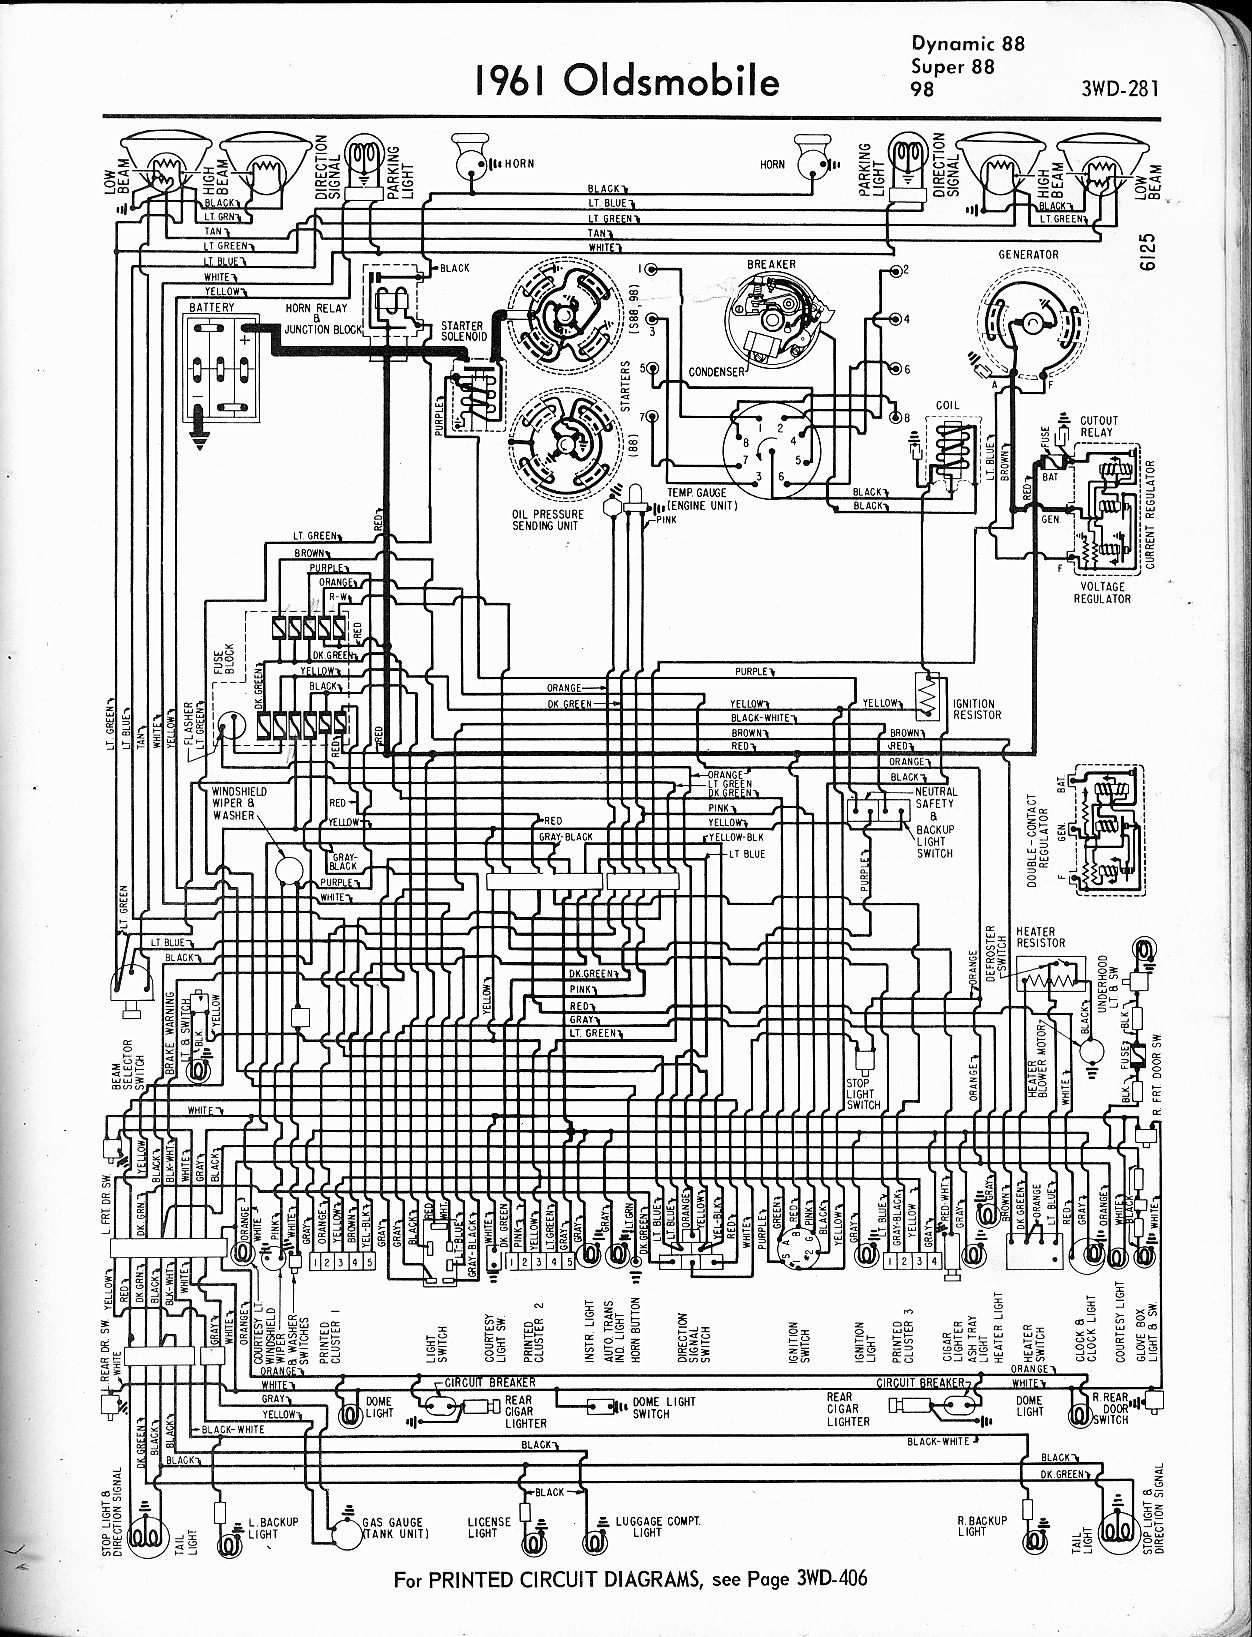 Oldsmobile wiring diagrams the old car manual project triumph wiring diagrams 2003 oldsmobile alero exhaust diagram 1995 oldsmobile wiring diagrams on 1962